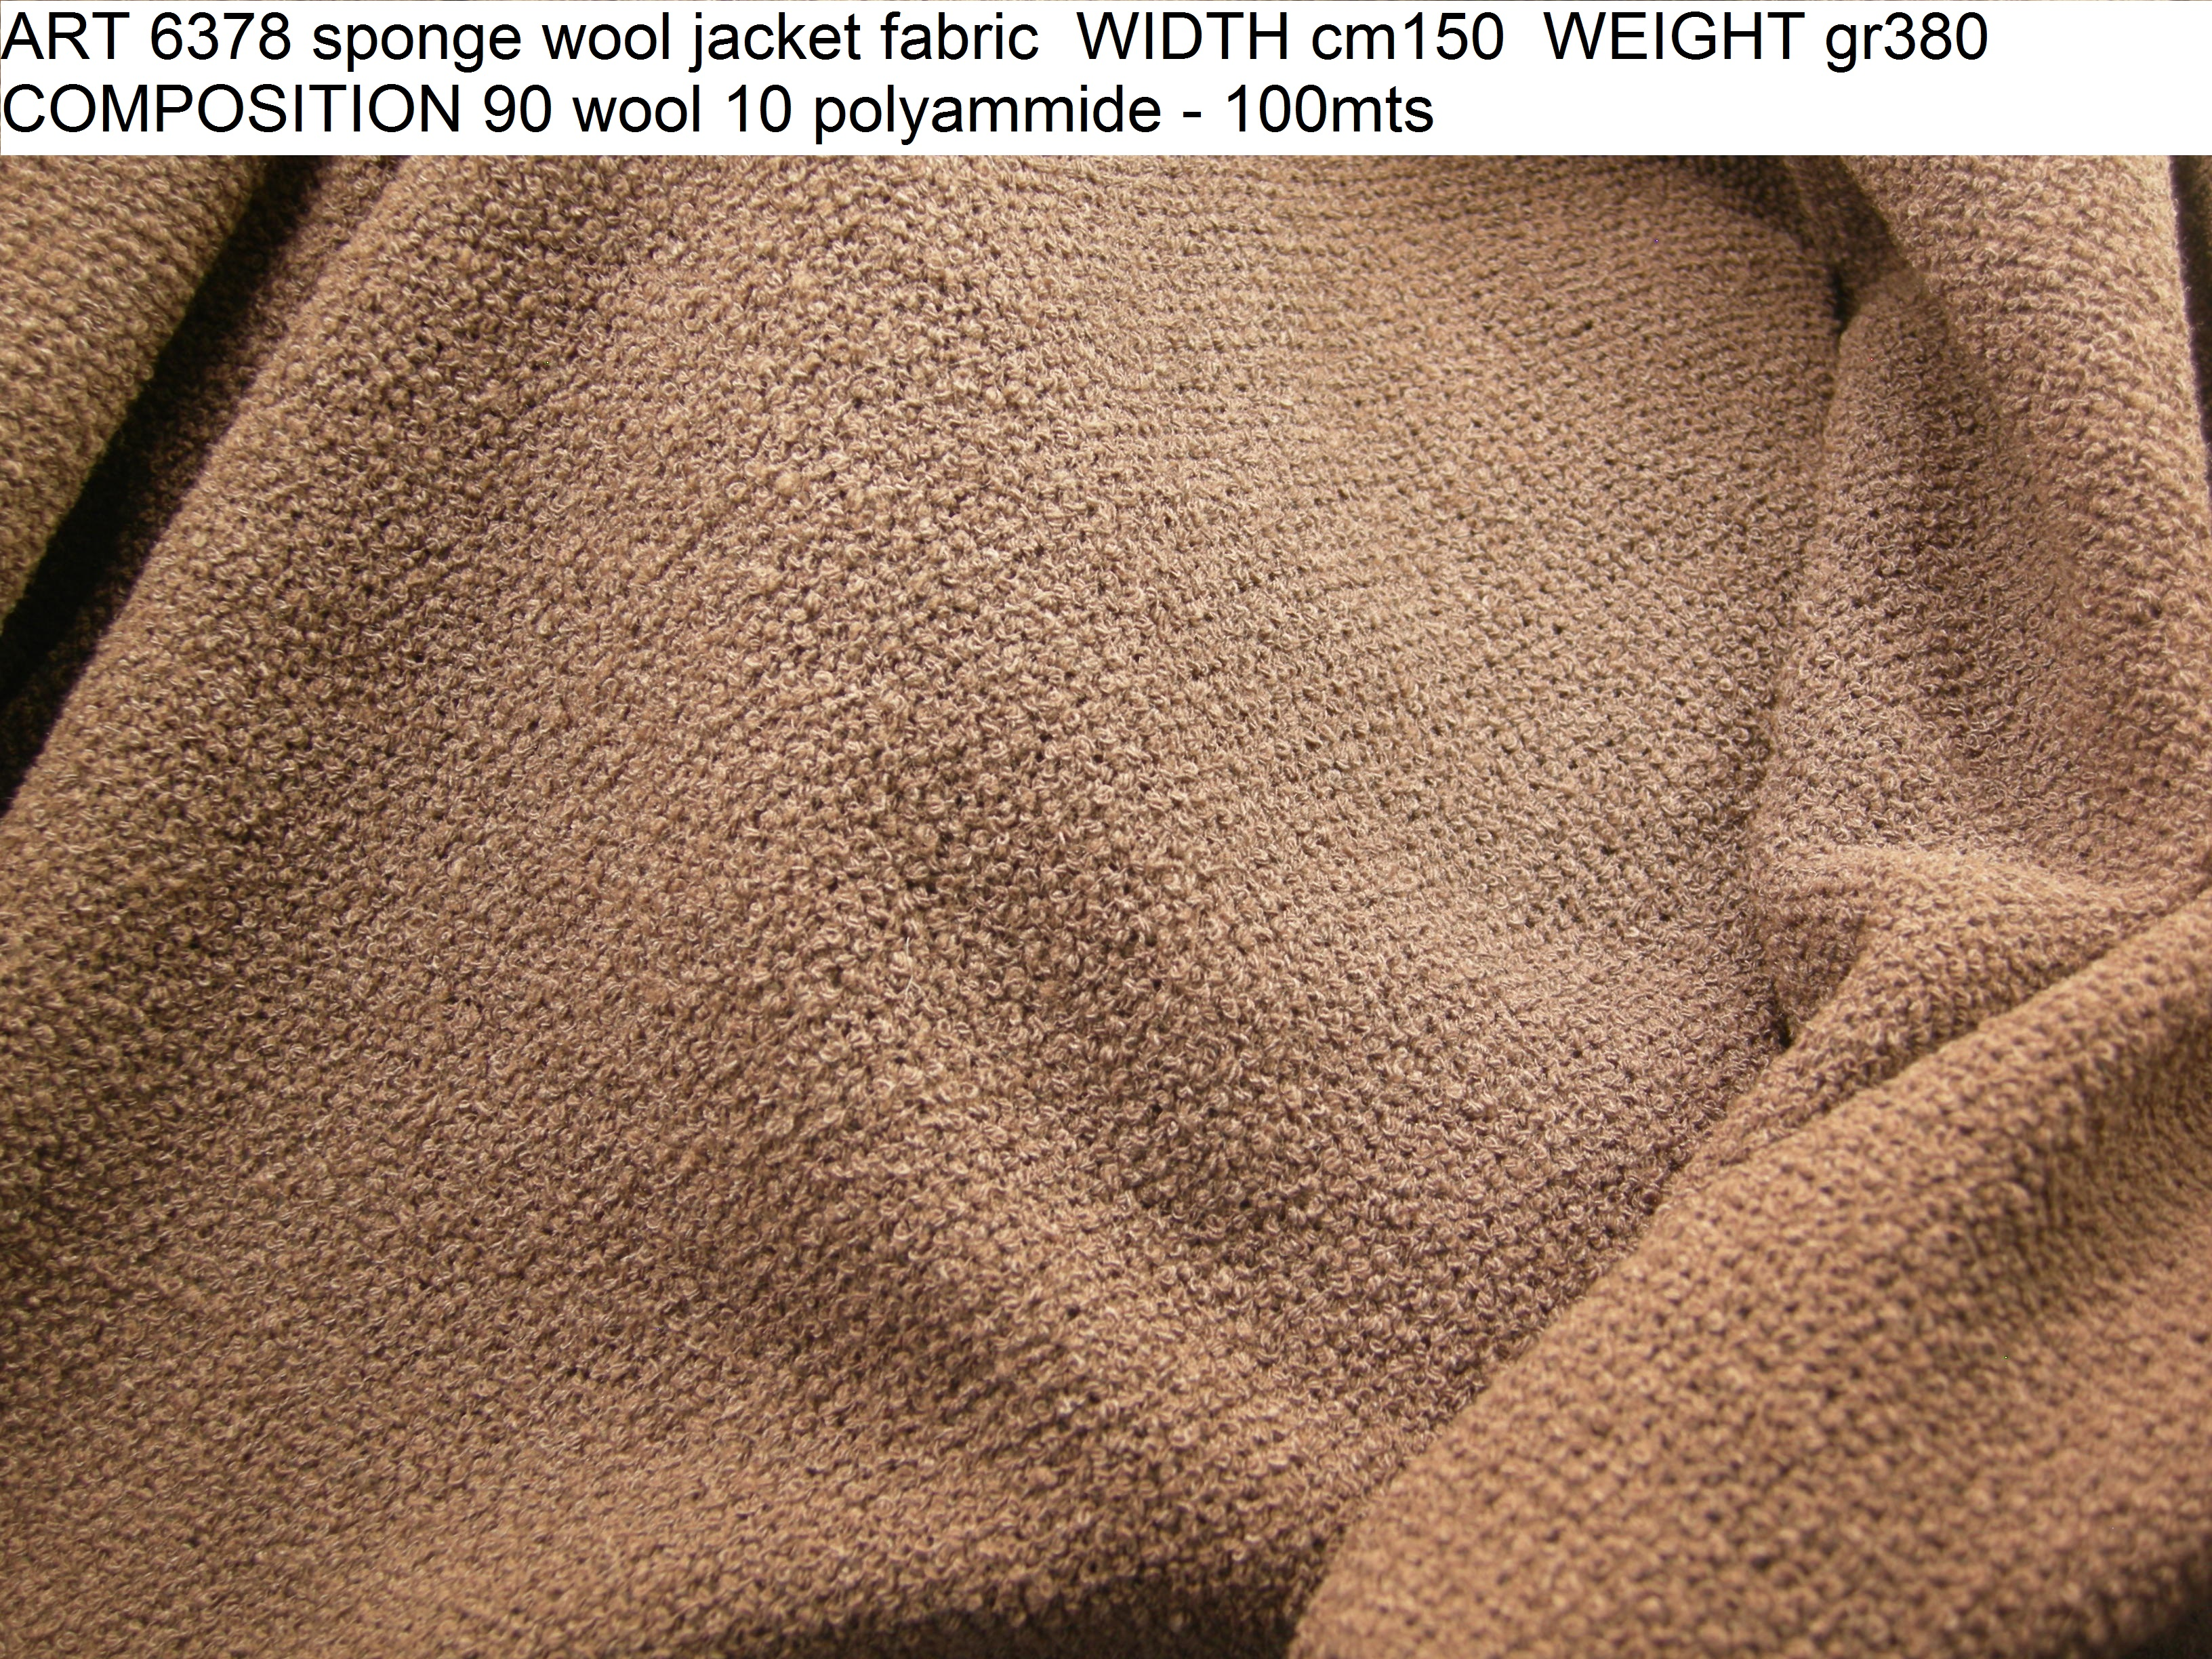 ART 6378 sponge wool jacket fabric WIDTH cm150 WEIGHT gr380 COMPOSITION 90 wool 10 polyammide - 100mts